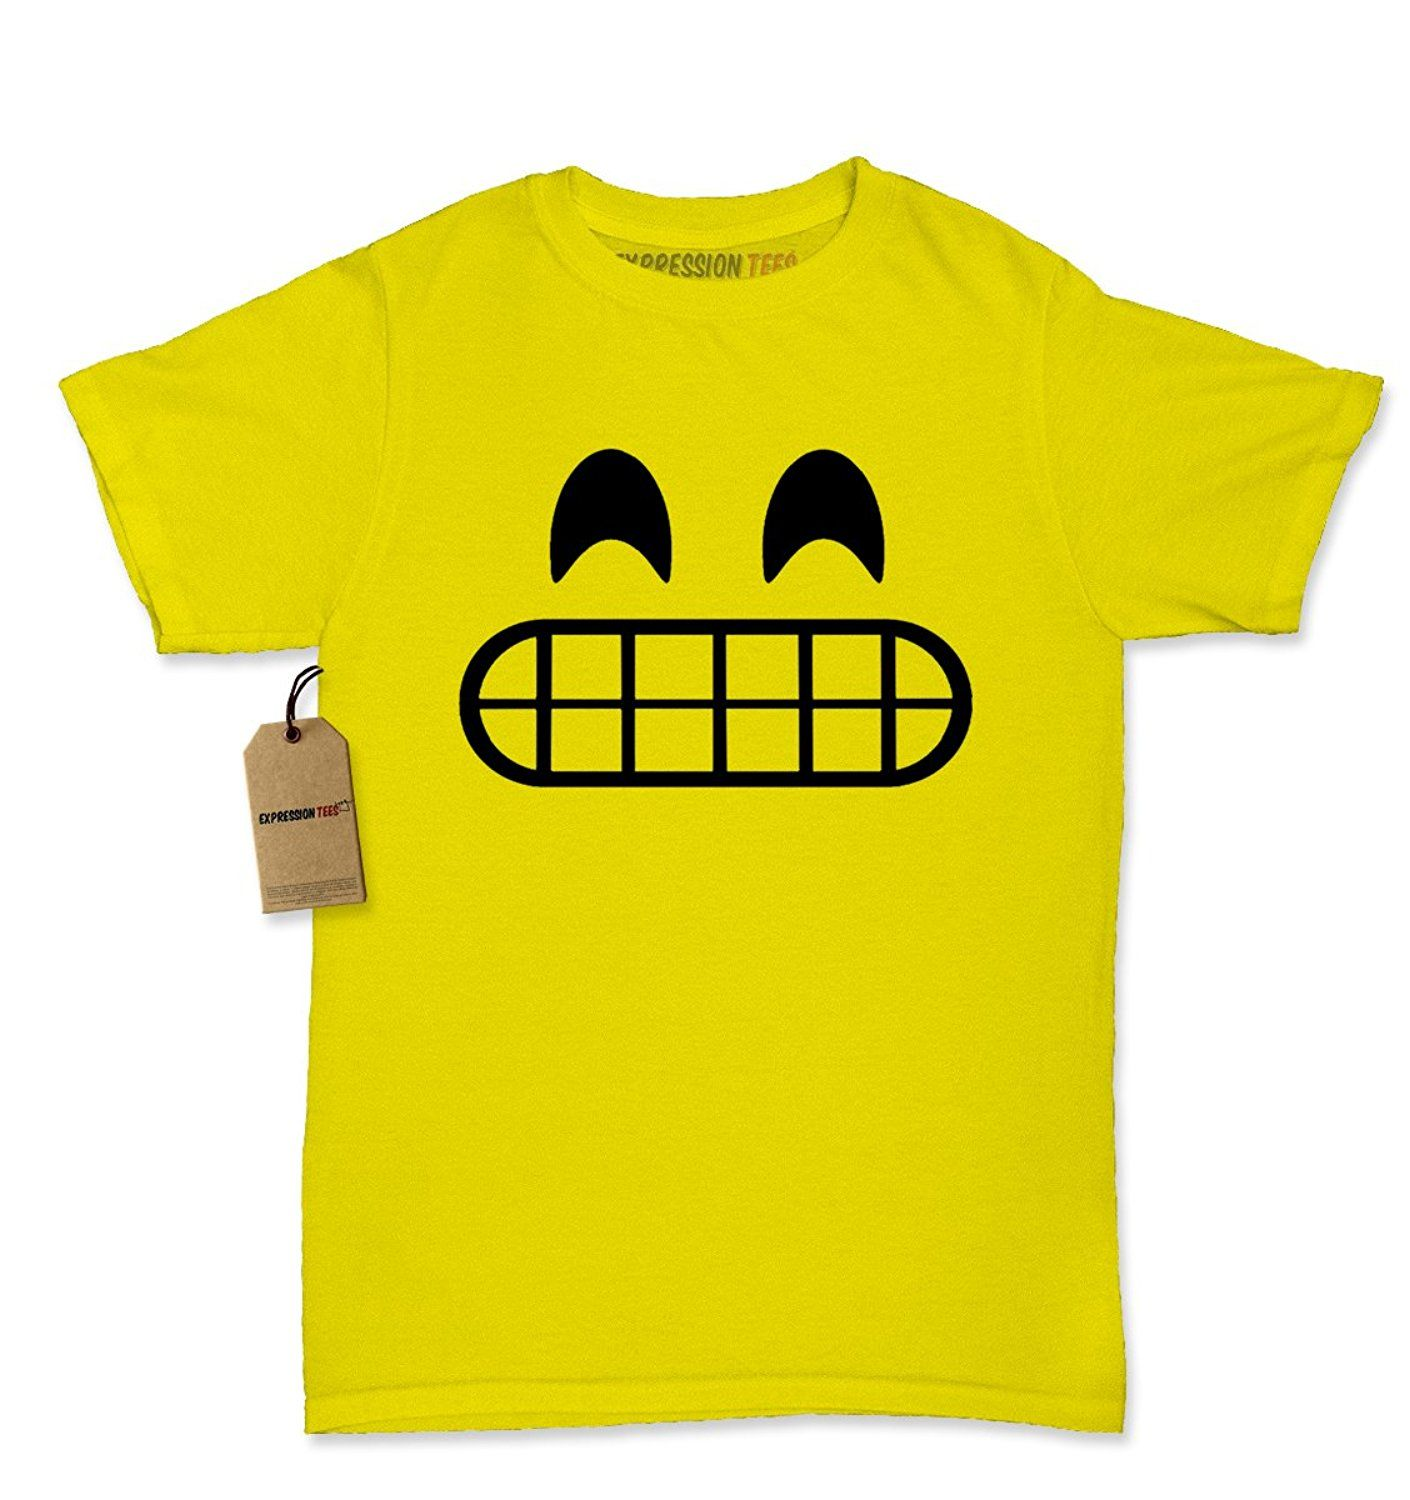 Amazon.com: Expression Tees Emoticon Smiley Face Emoticon Womens T-shirt Collection: Clothing